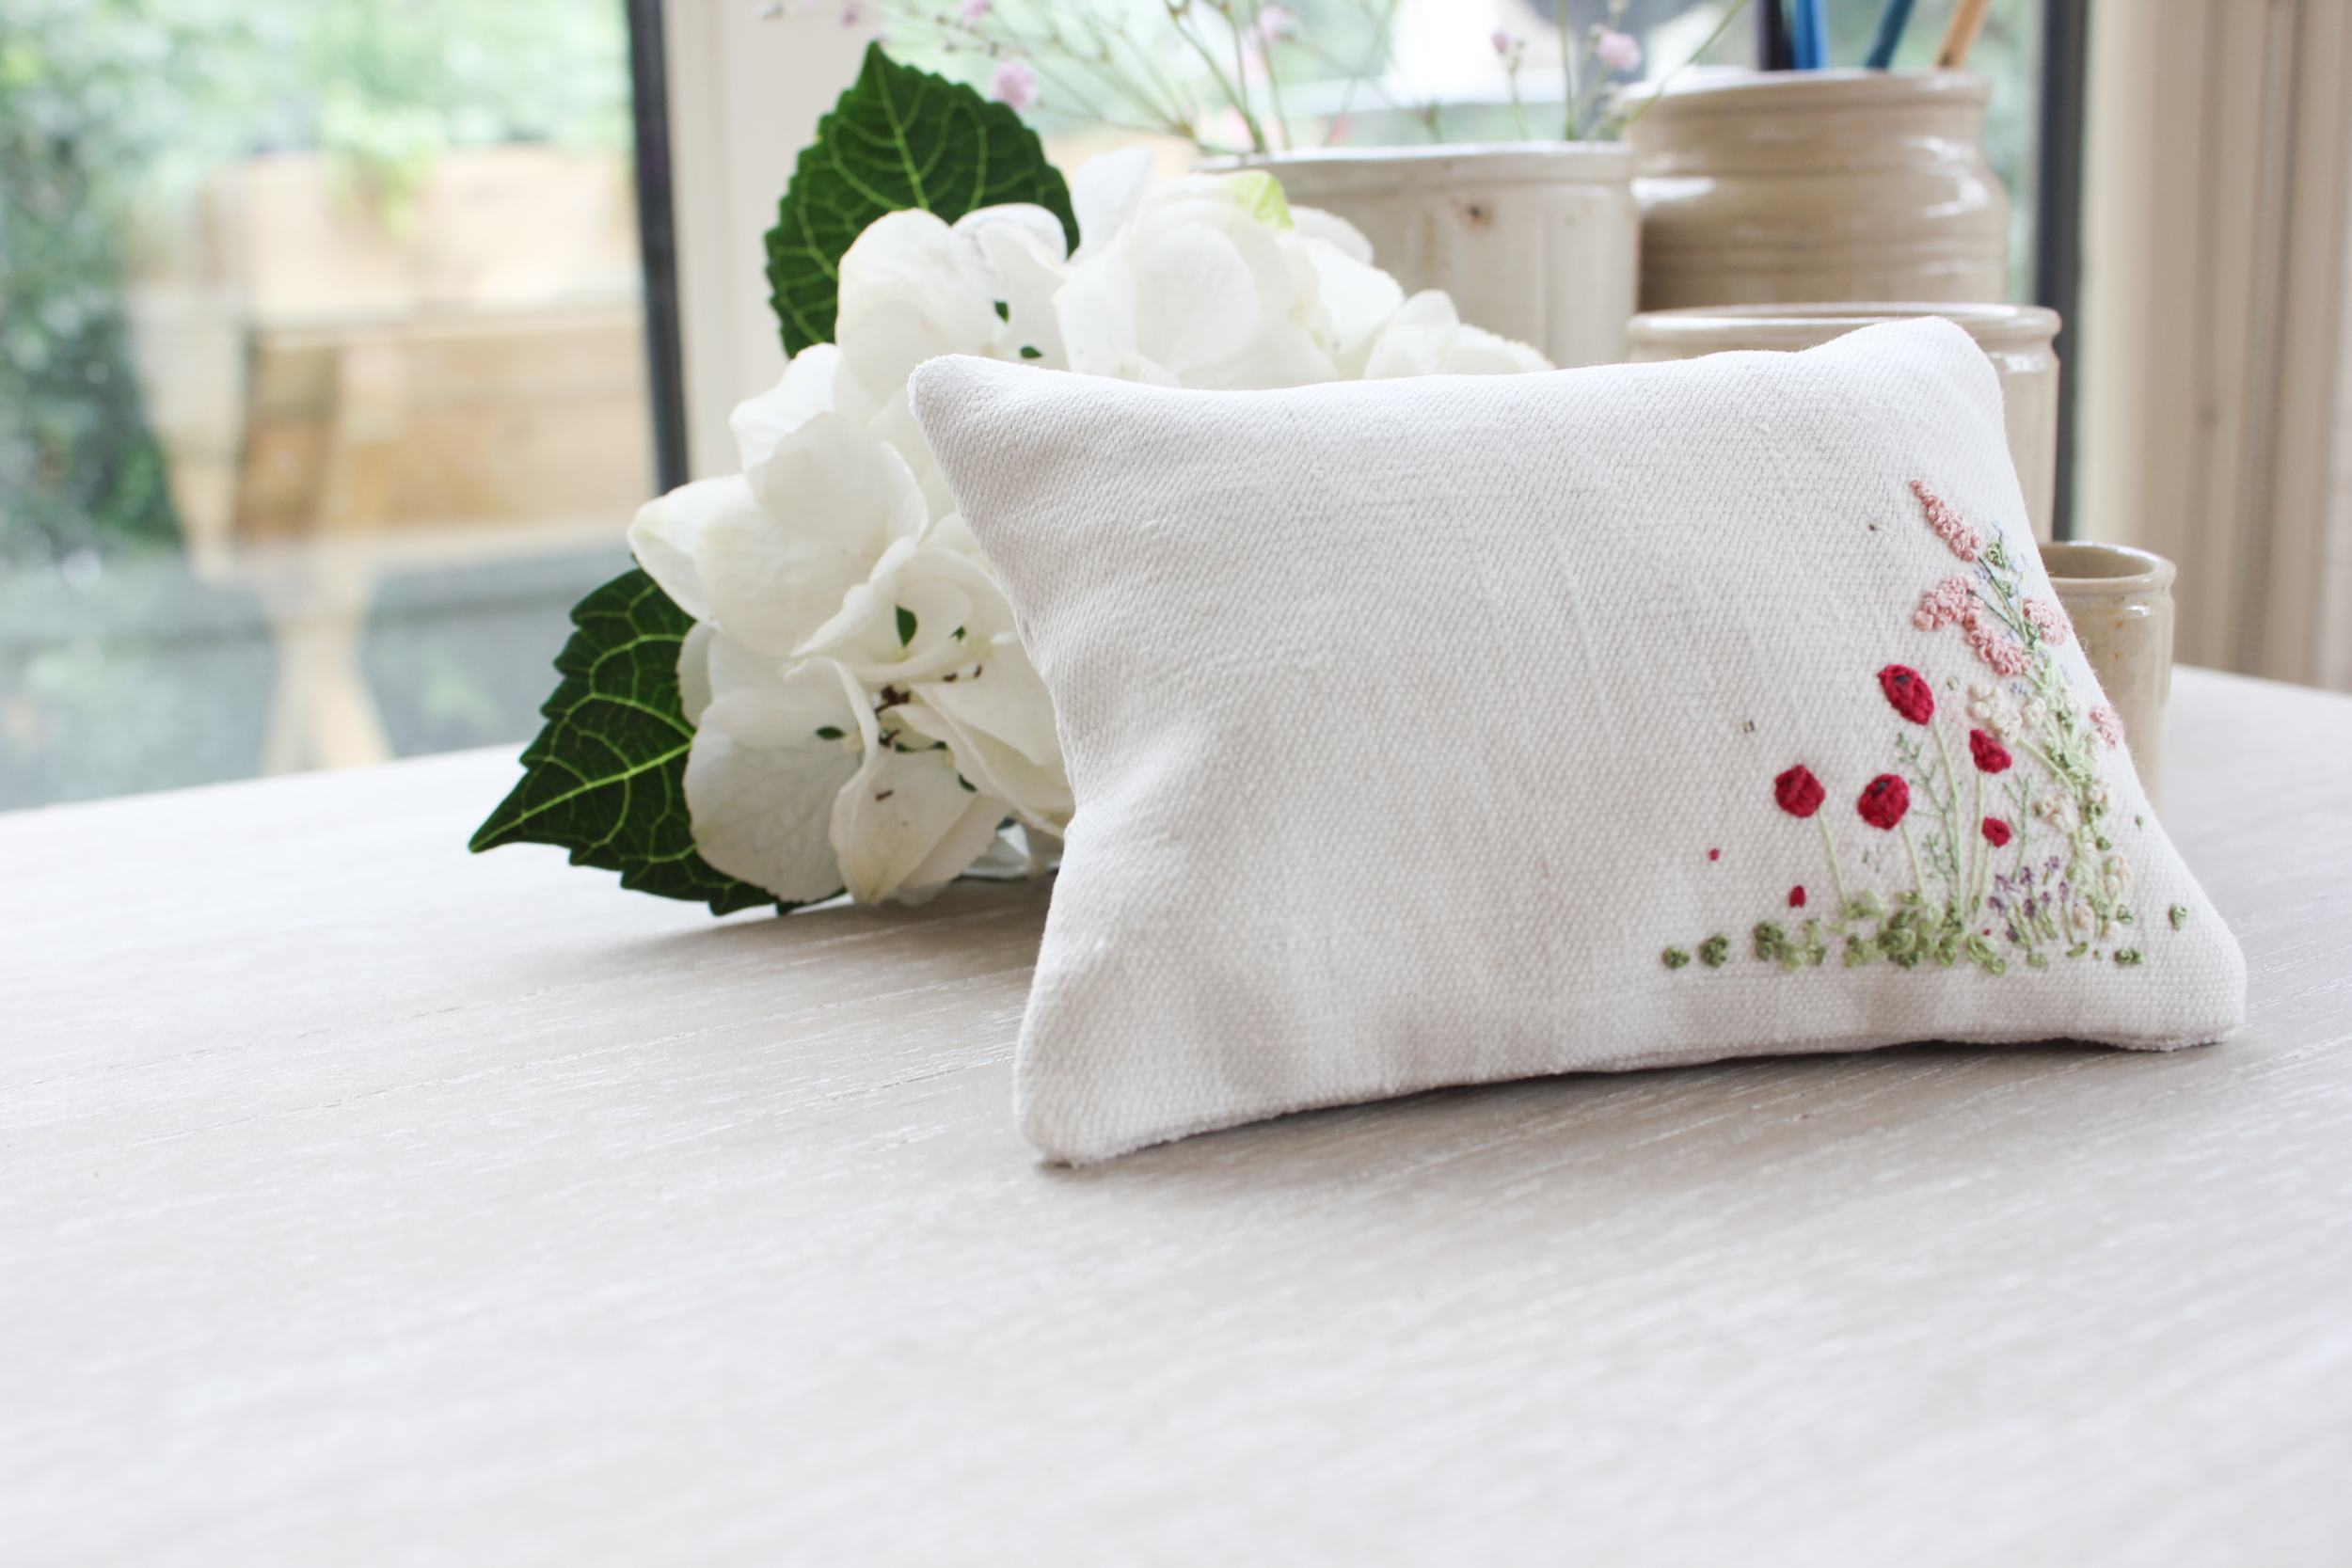 embroidered lavender sachet_.jpg